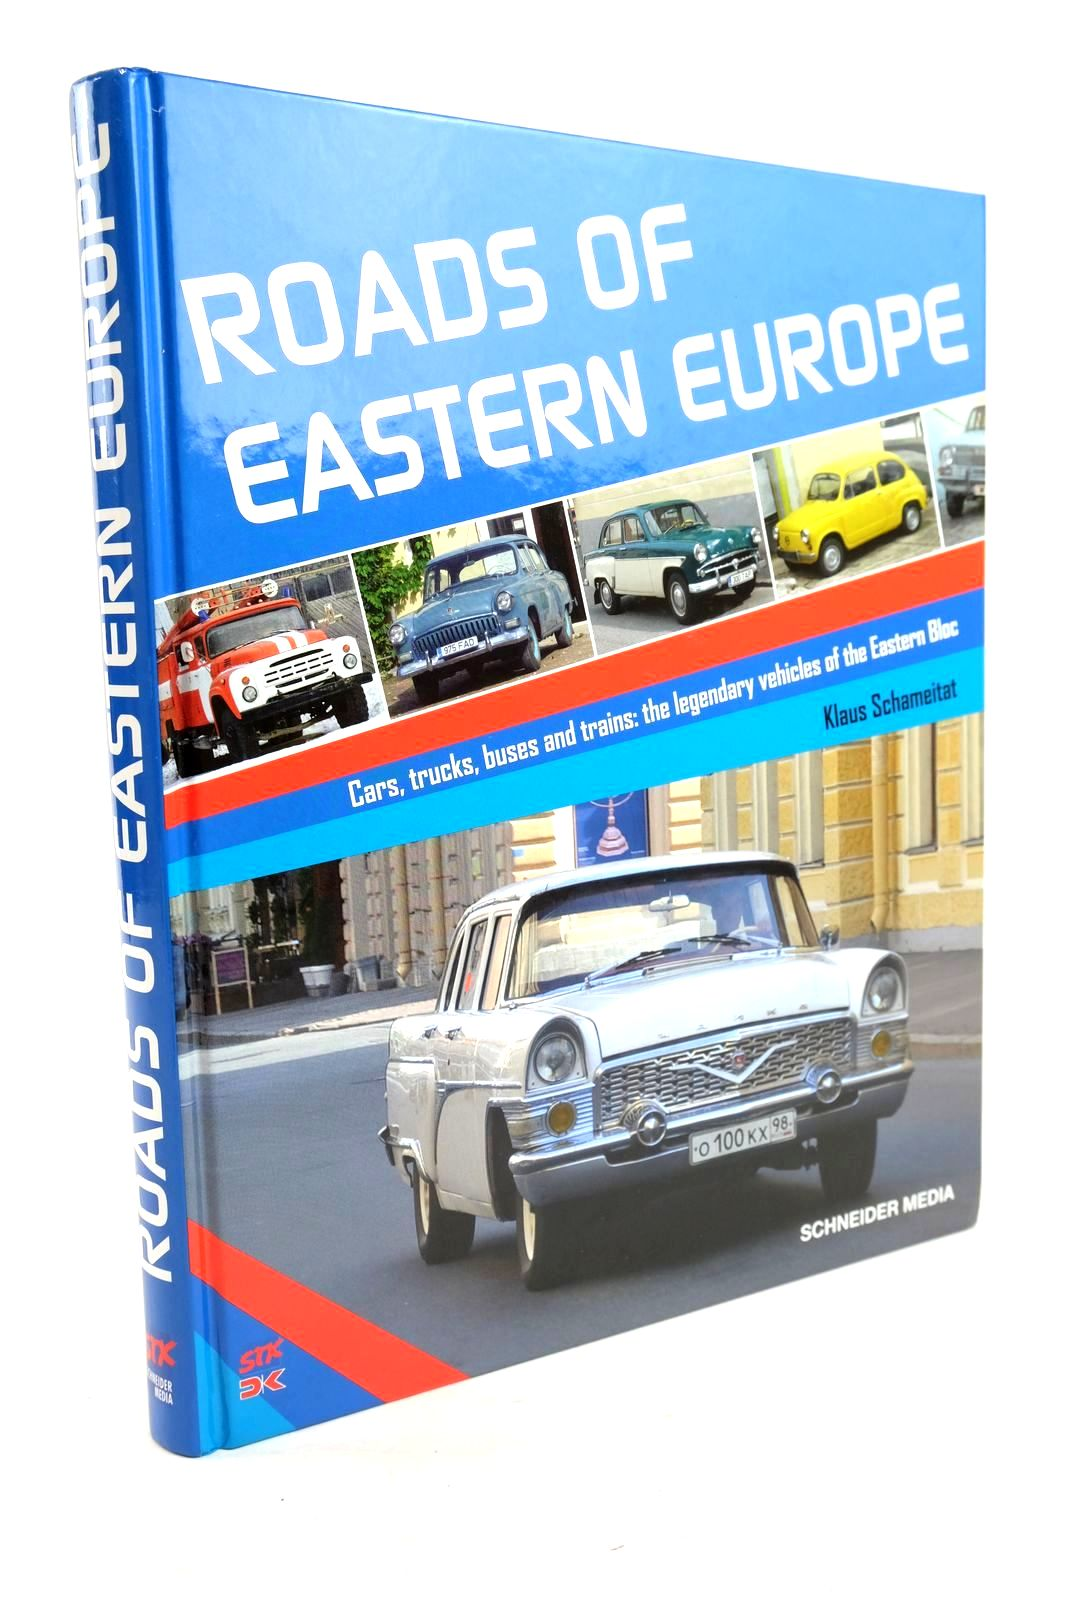 Photo of ROADS OF EASTERN EUROPE written by Schameitat, Klaus published by Schneider Media (STOCK CODE: 1320166)  for sale by Stella & Rose's Books